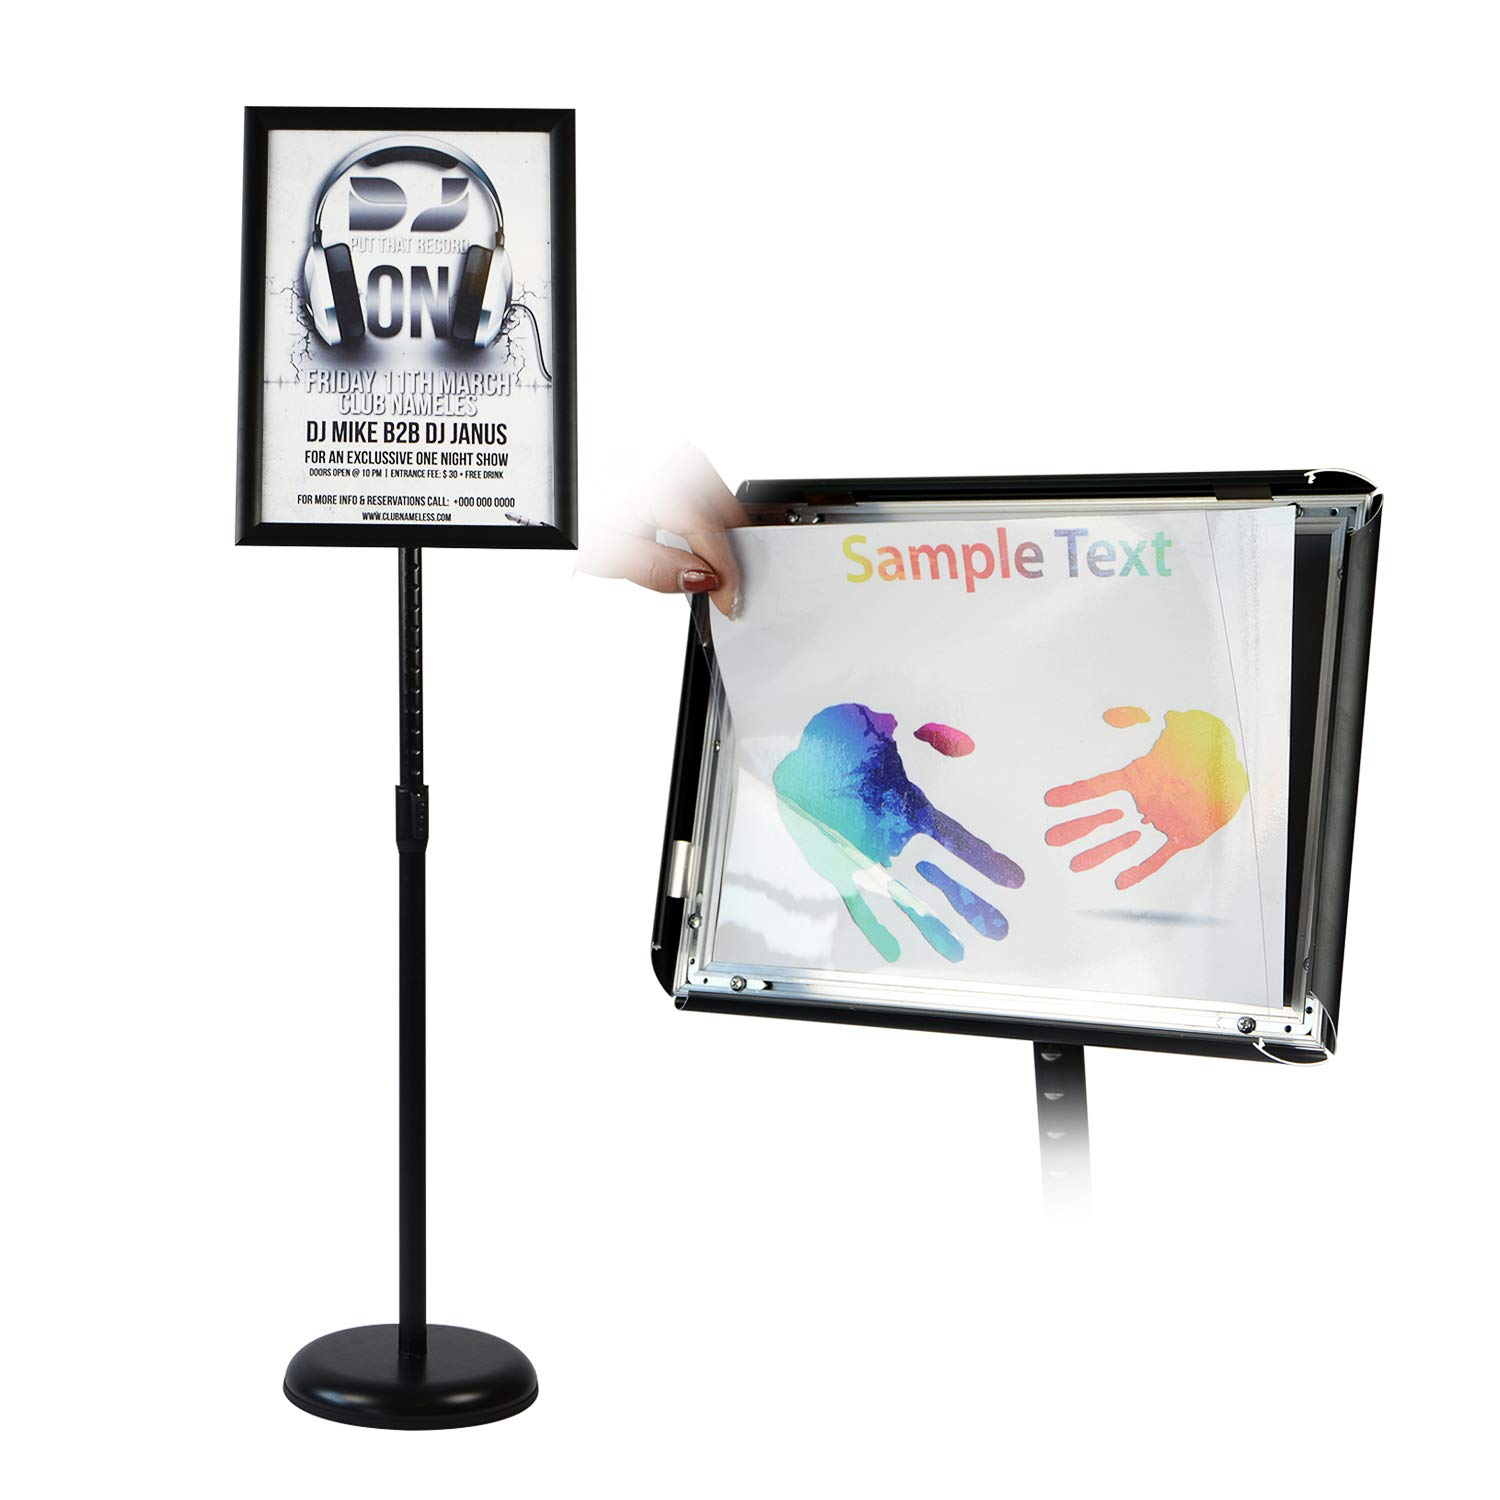 T-SIGN Adjustable Pedestal Poster Stand Aluminum Snap Open Frame for 8.5 x 11 Inch, Vertical and Horizontal View Sign Displayed, Black, Round Base by T-SIGN